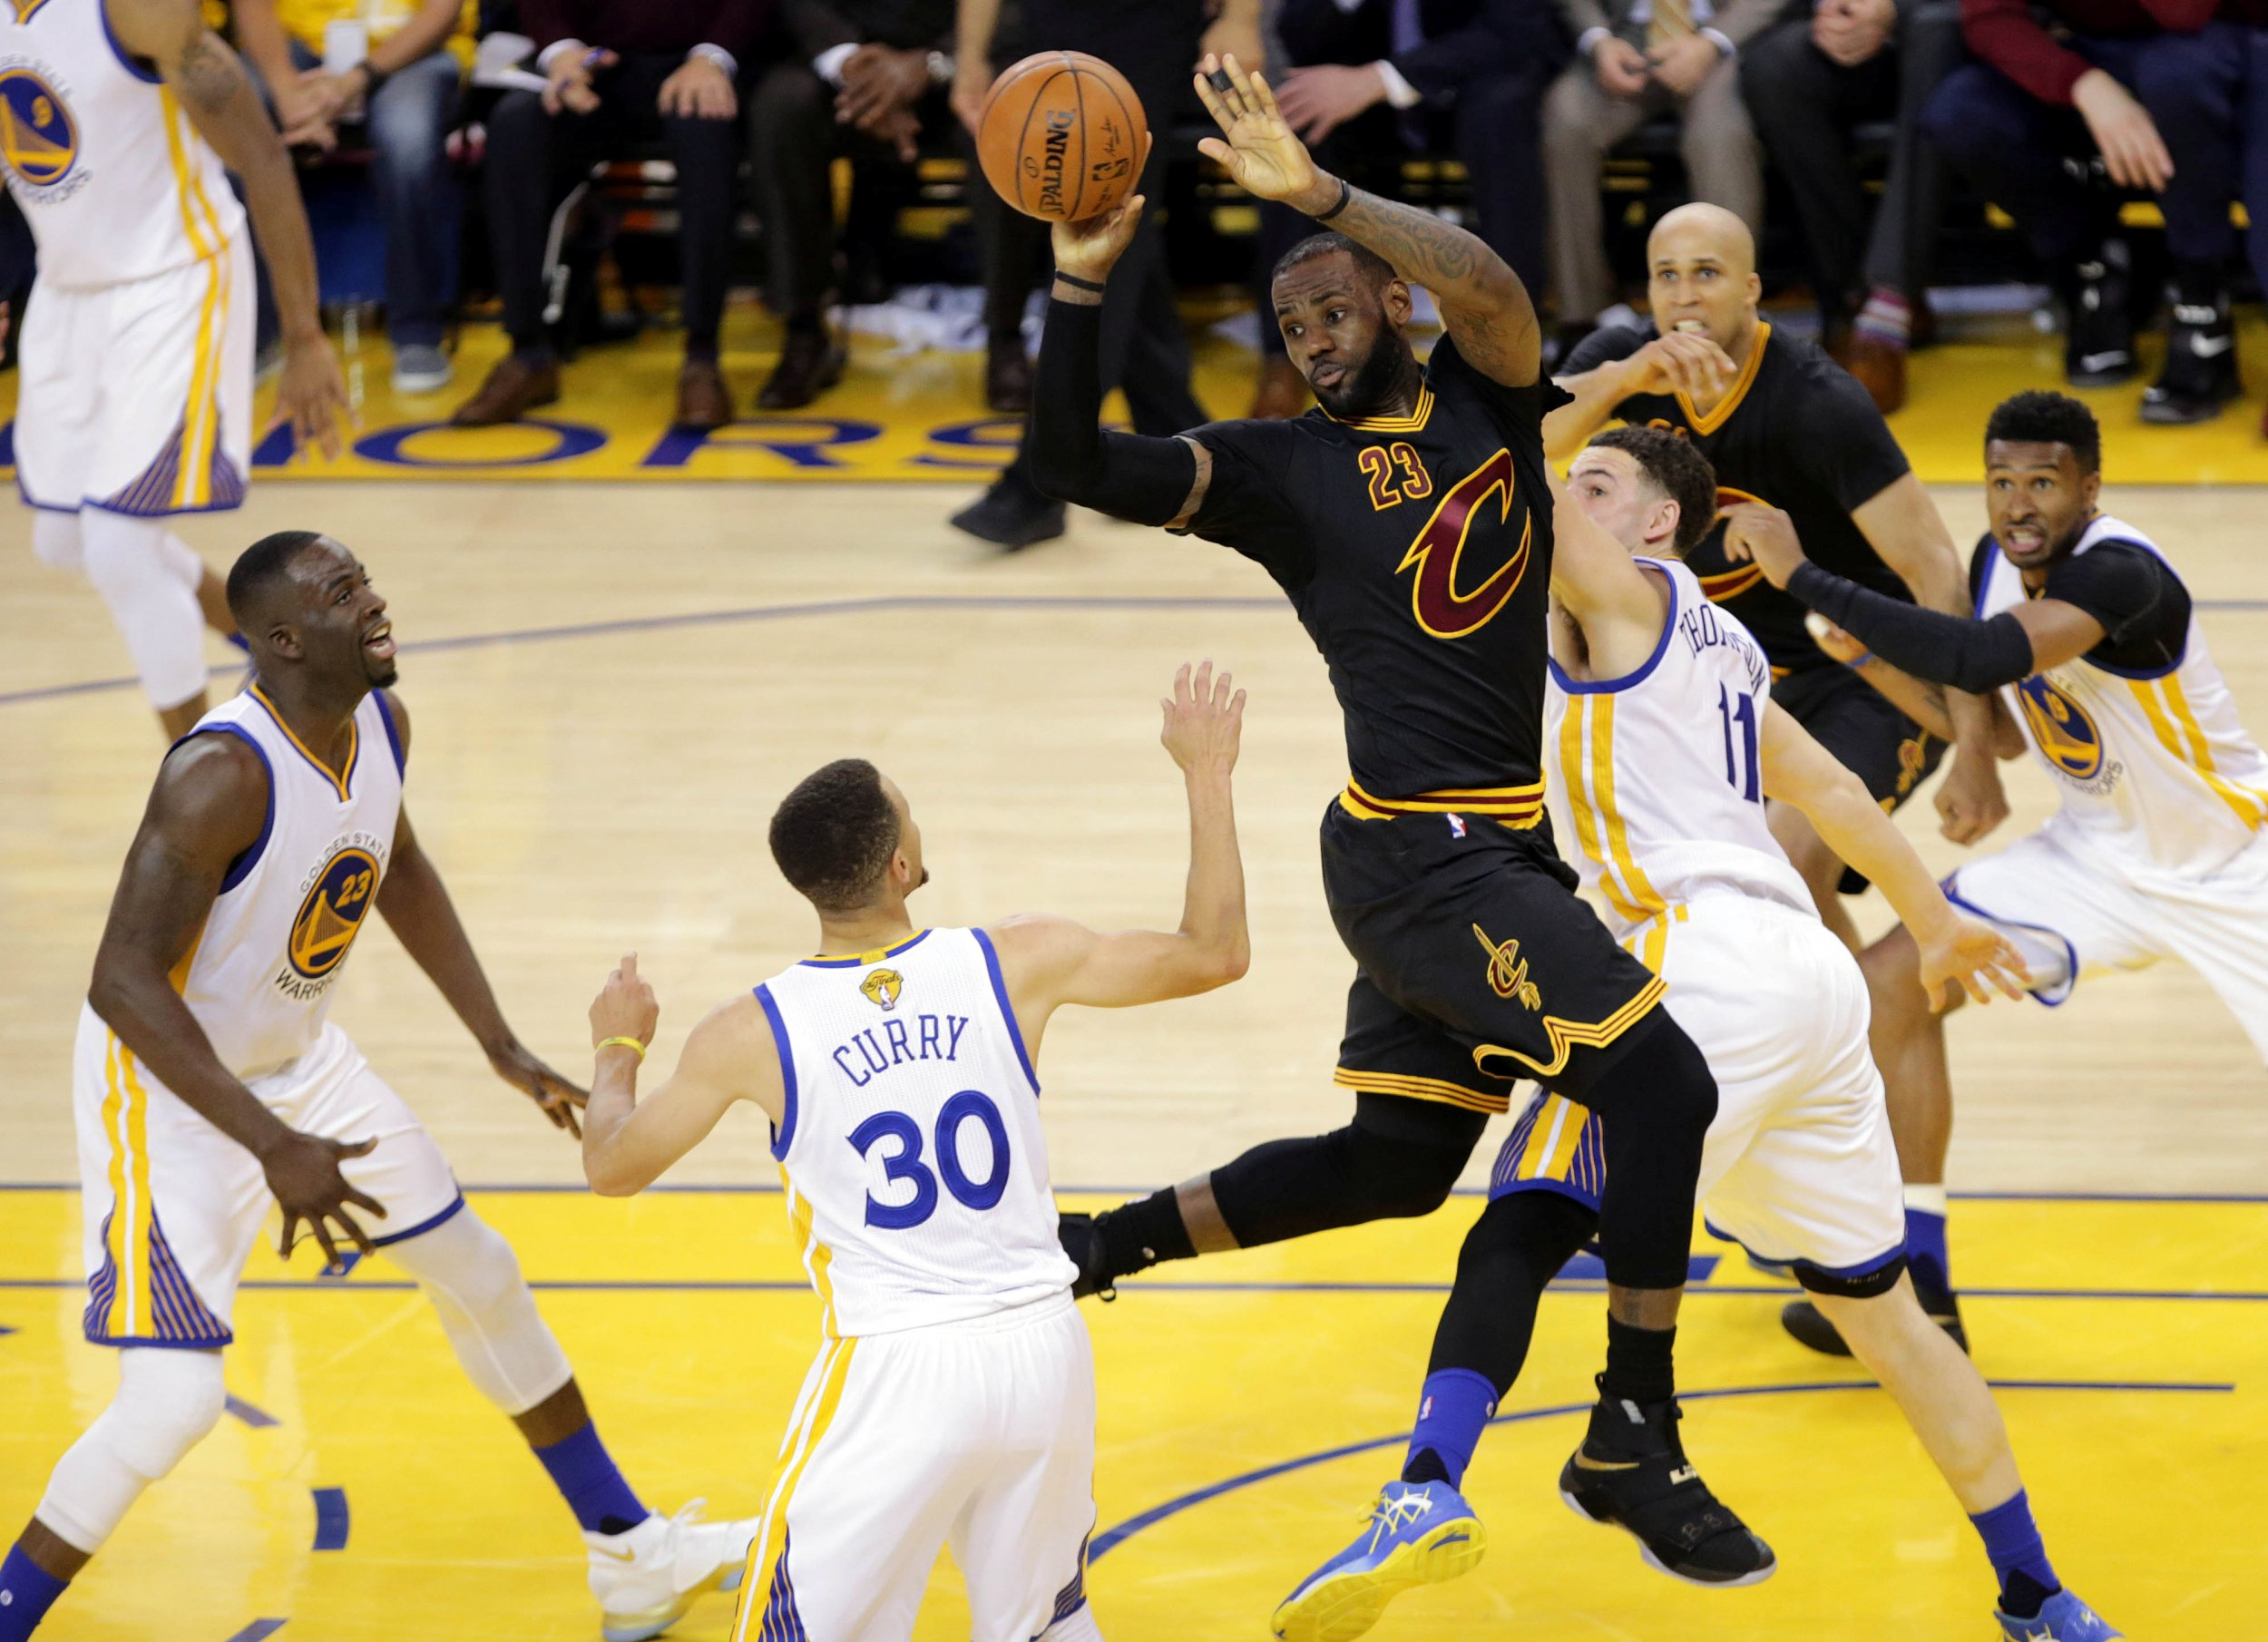 fafcc93c7d3 James was head and shoulders above everyone in the 2016 NBA Finals. USA  TODAY SPORTS